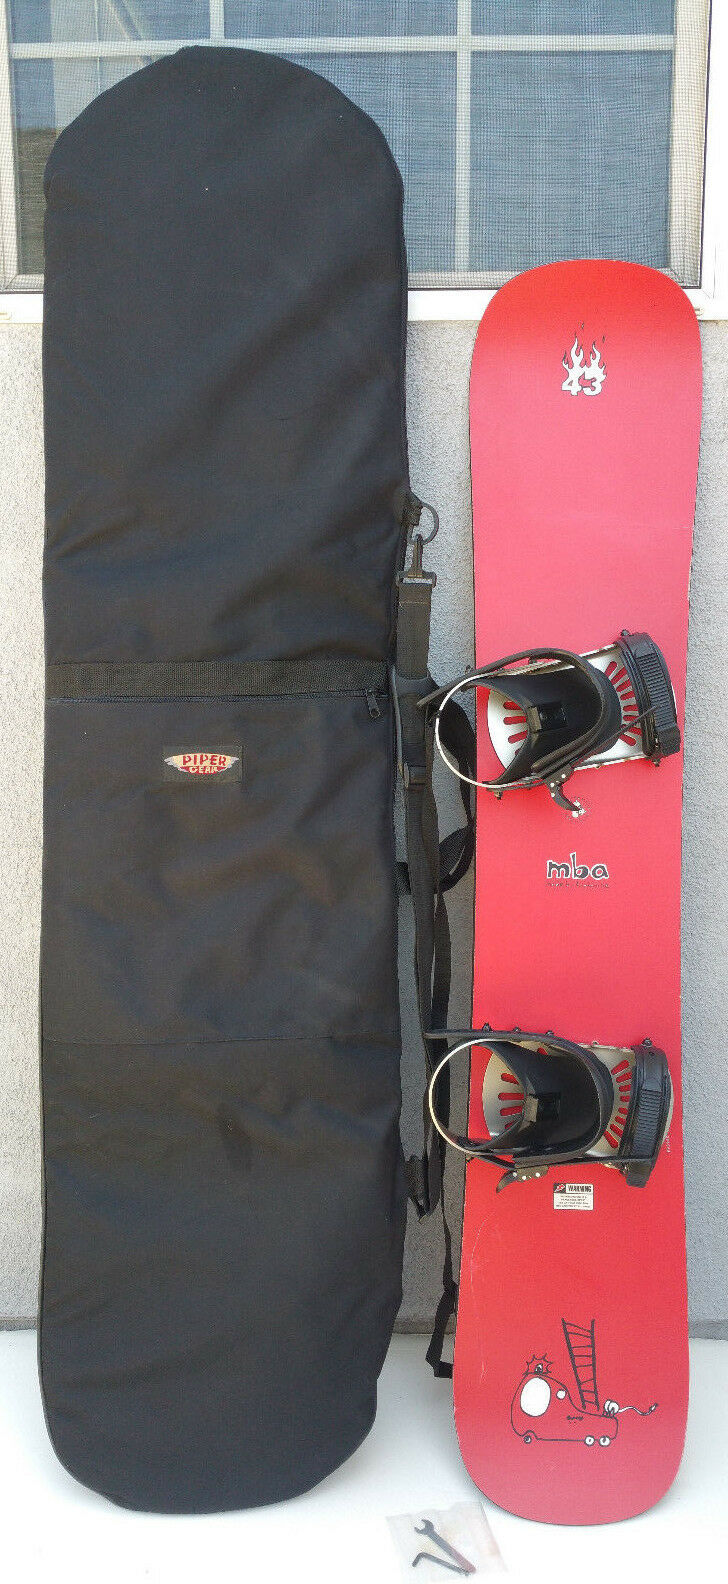 Avalanche MBA cm Red Snowboard Bindings + Soft Padded Case Made Austria